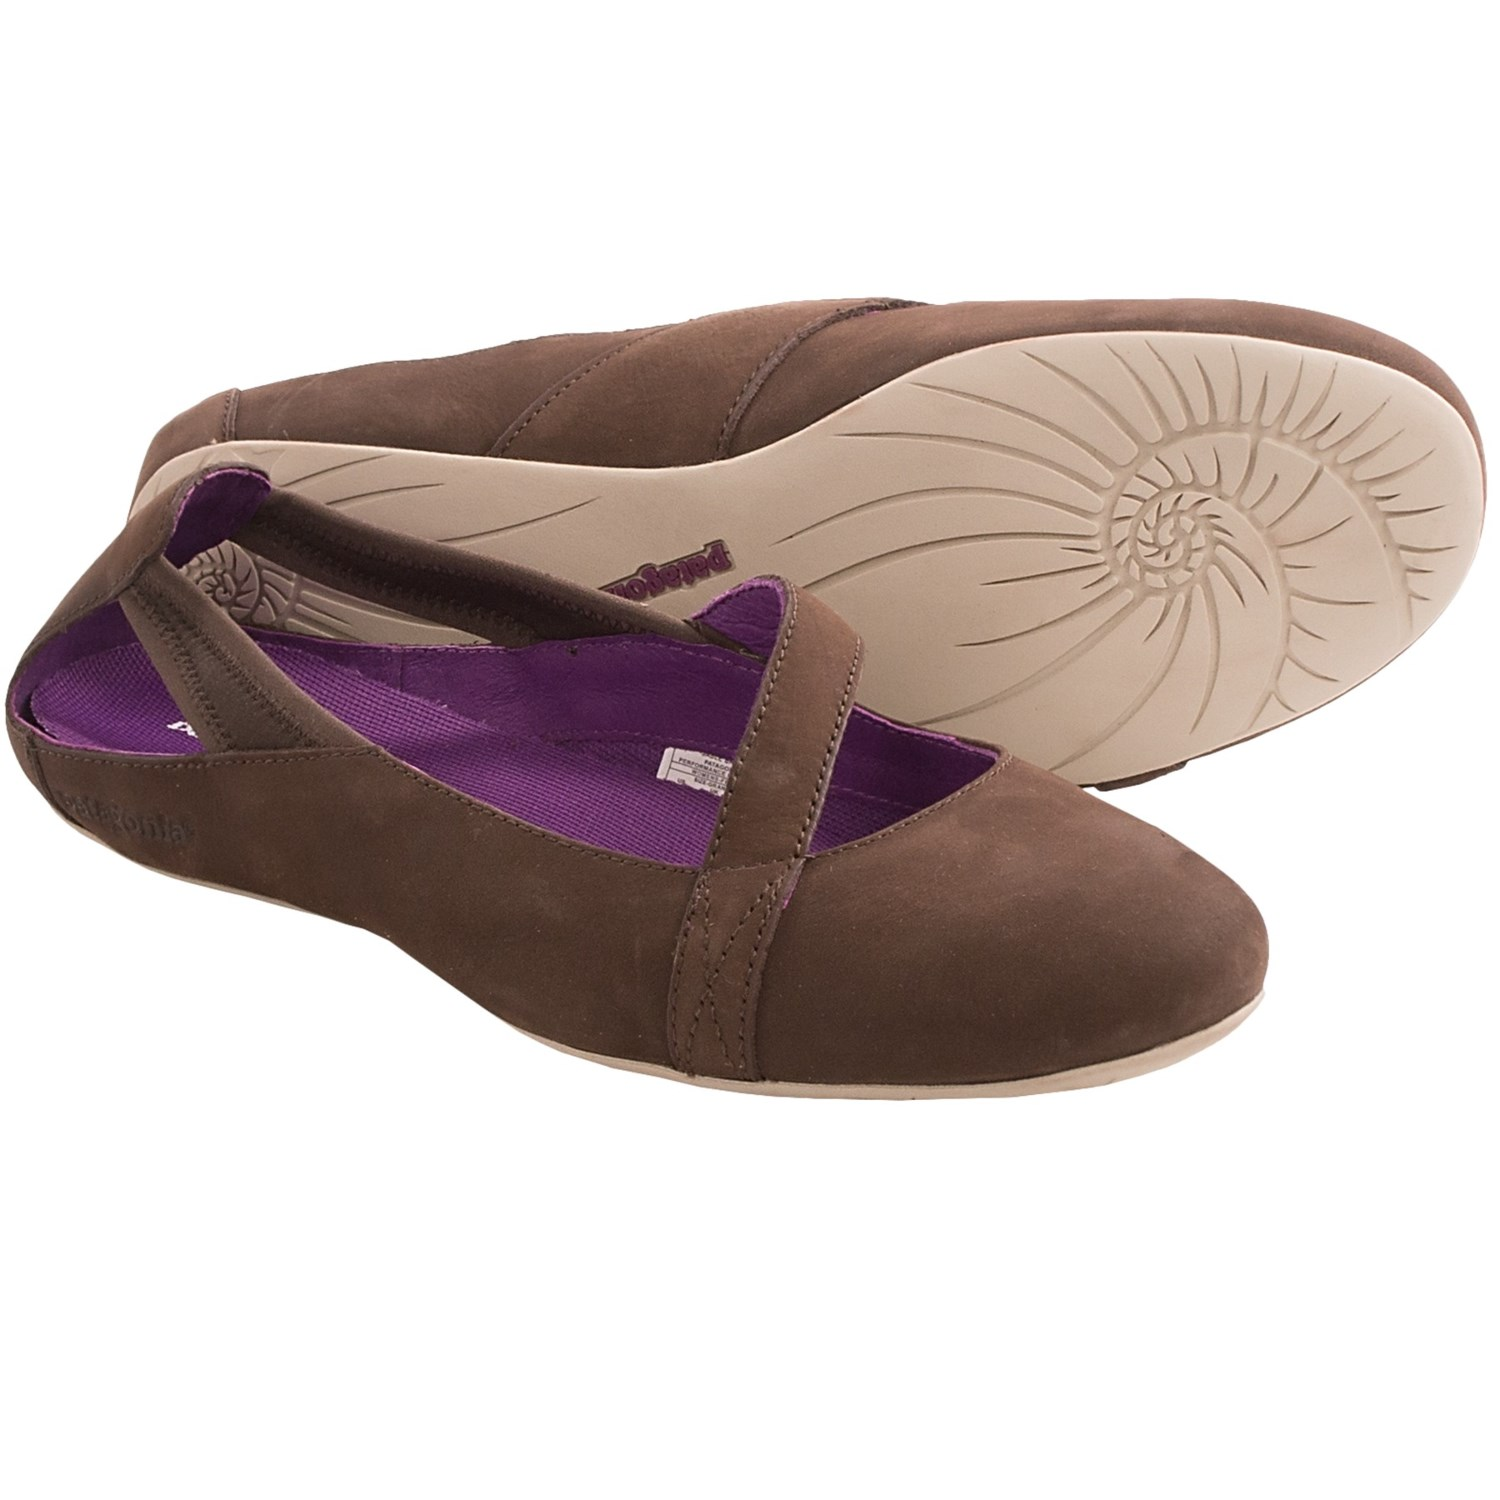 Patagonia Maha Sling Shoes (For Women) in Sable Brown